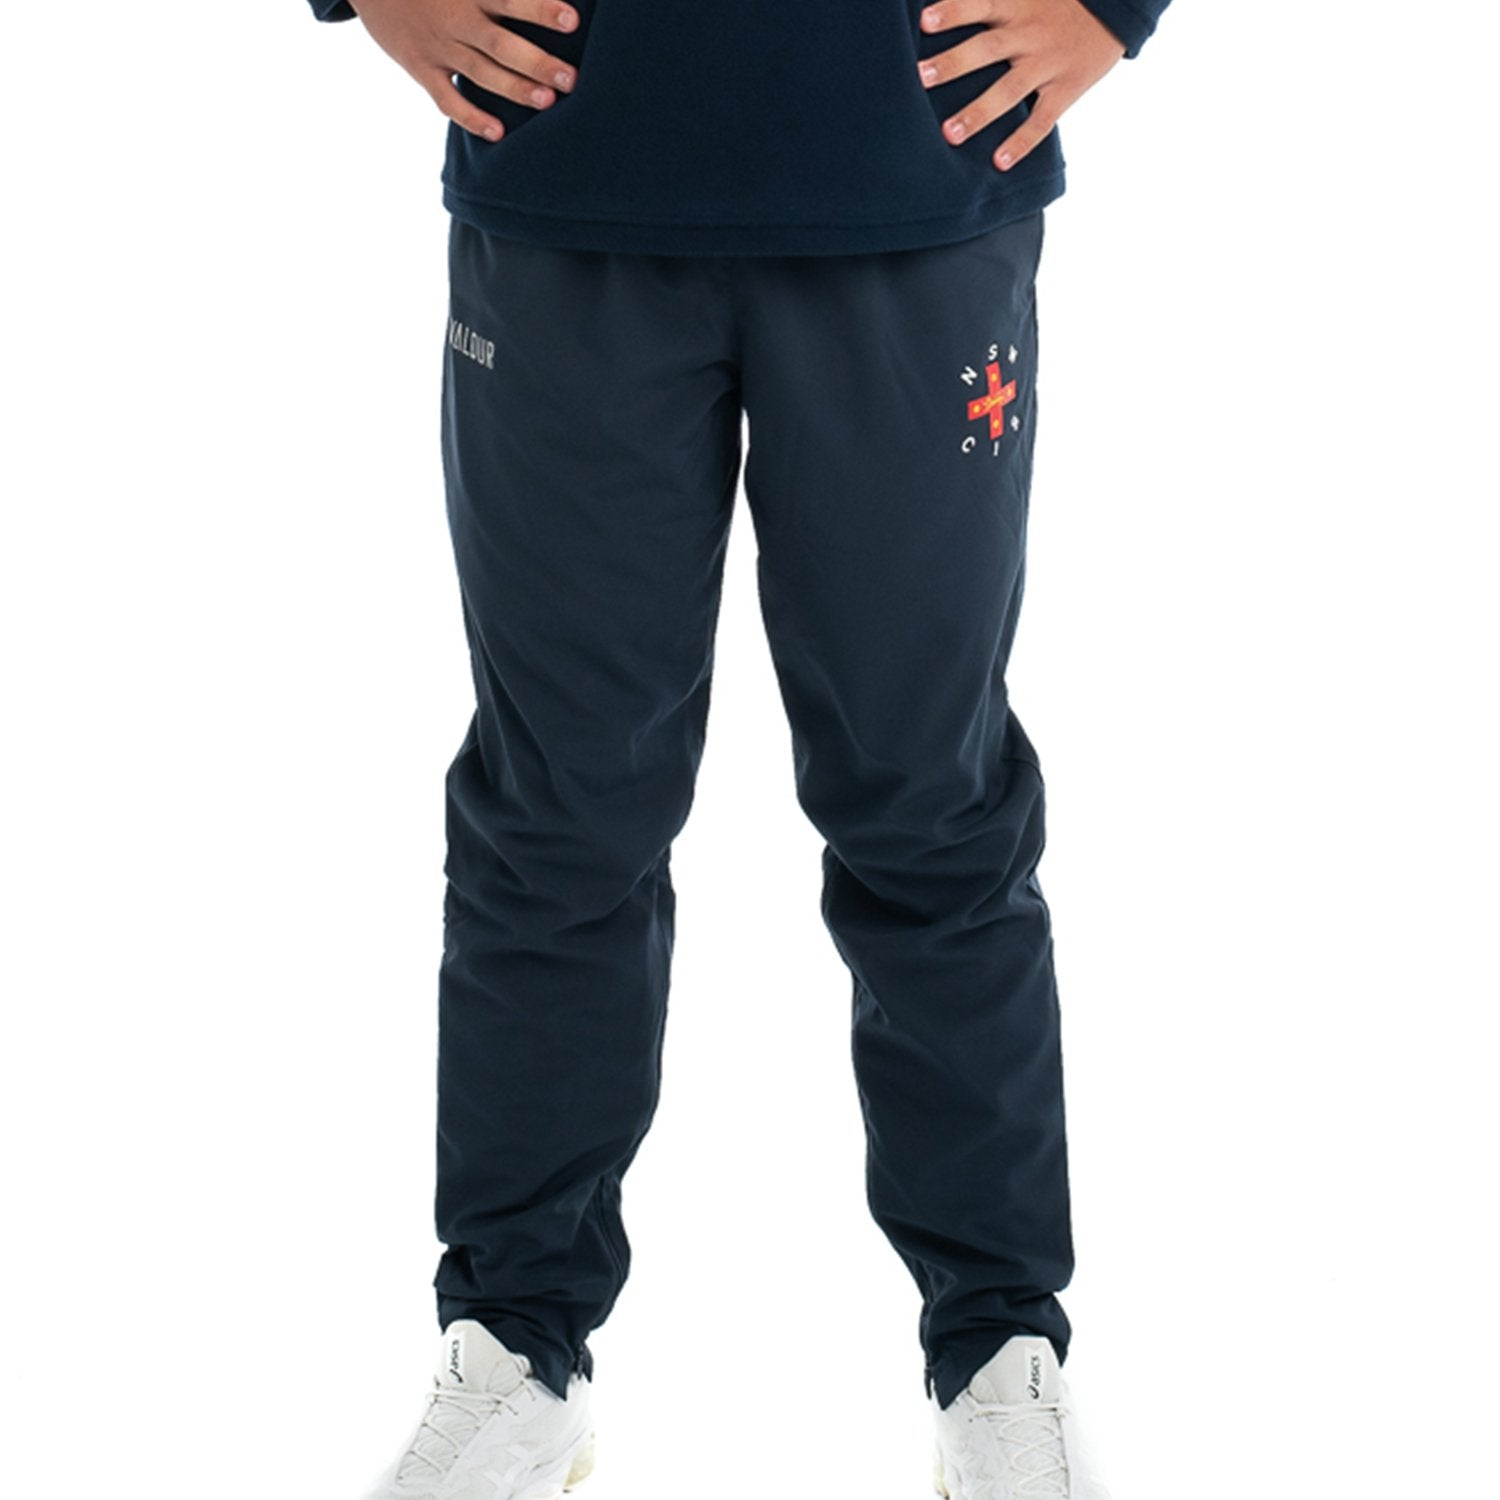 NSW CIS Representative Track Pants